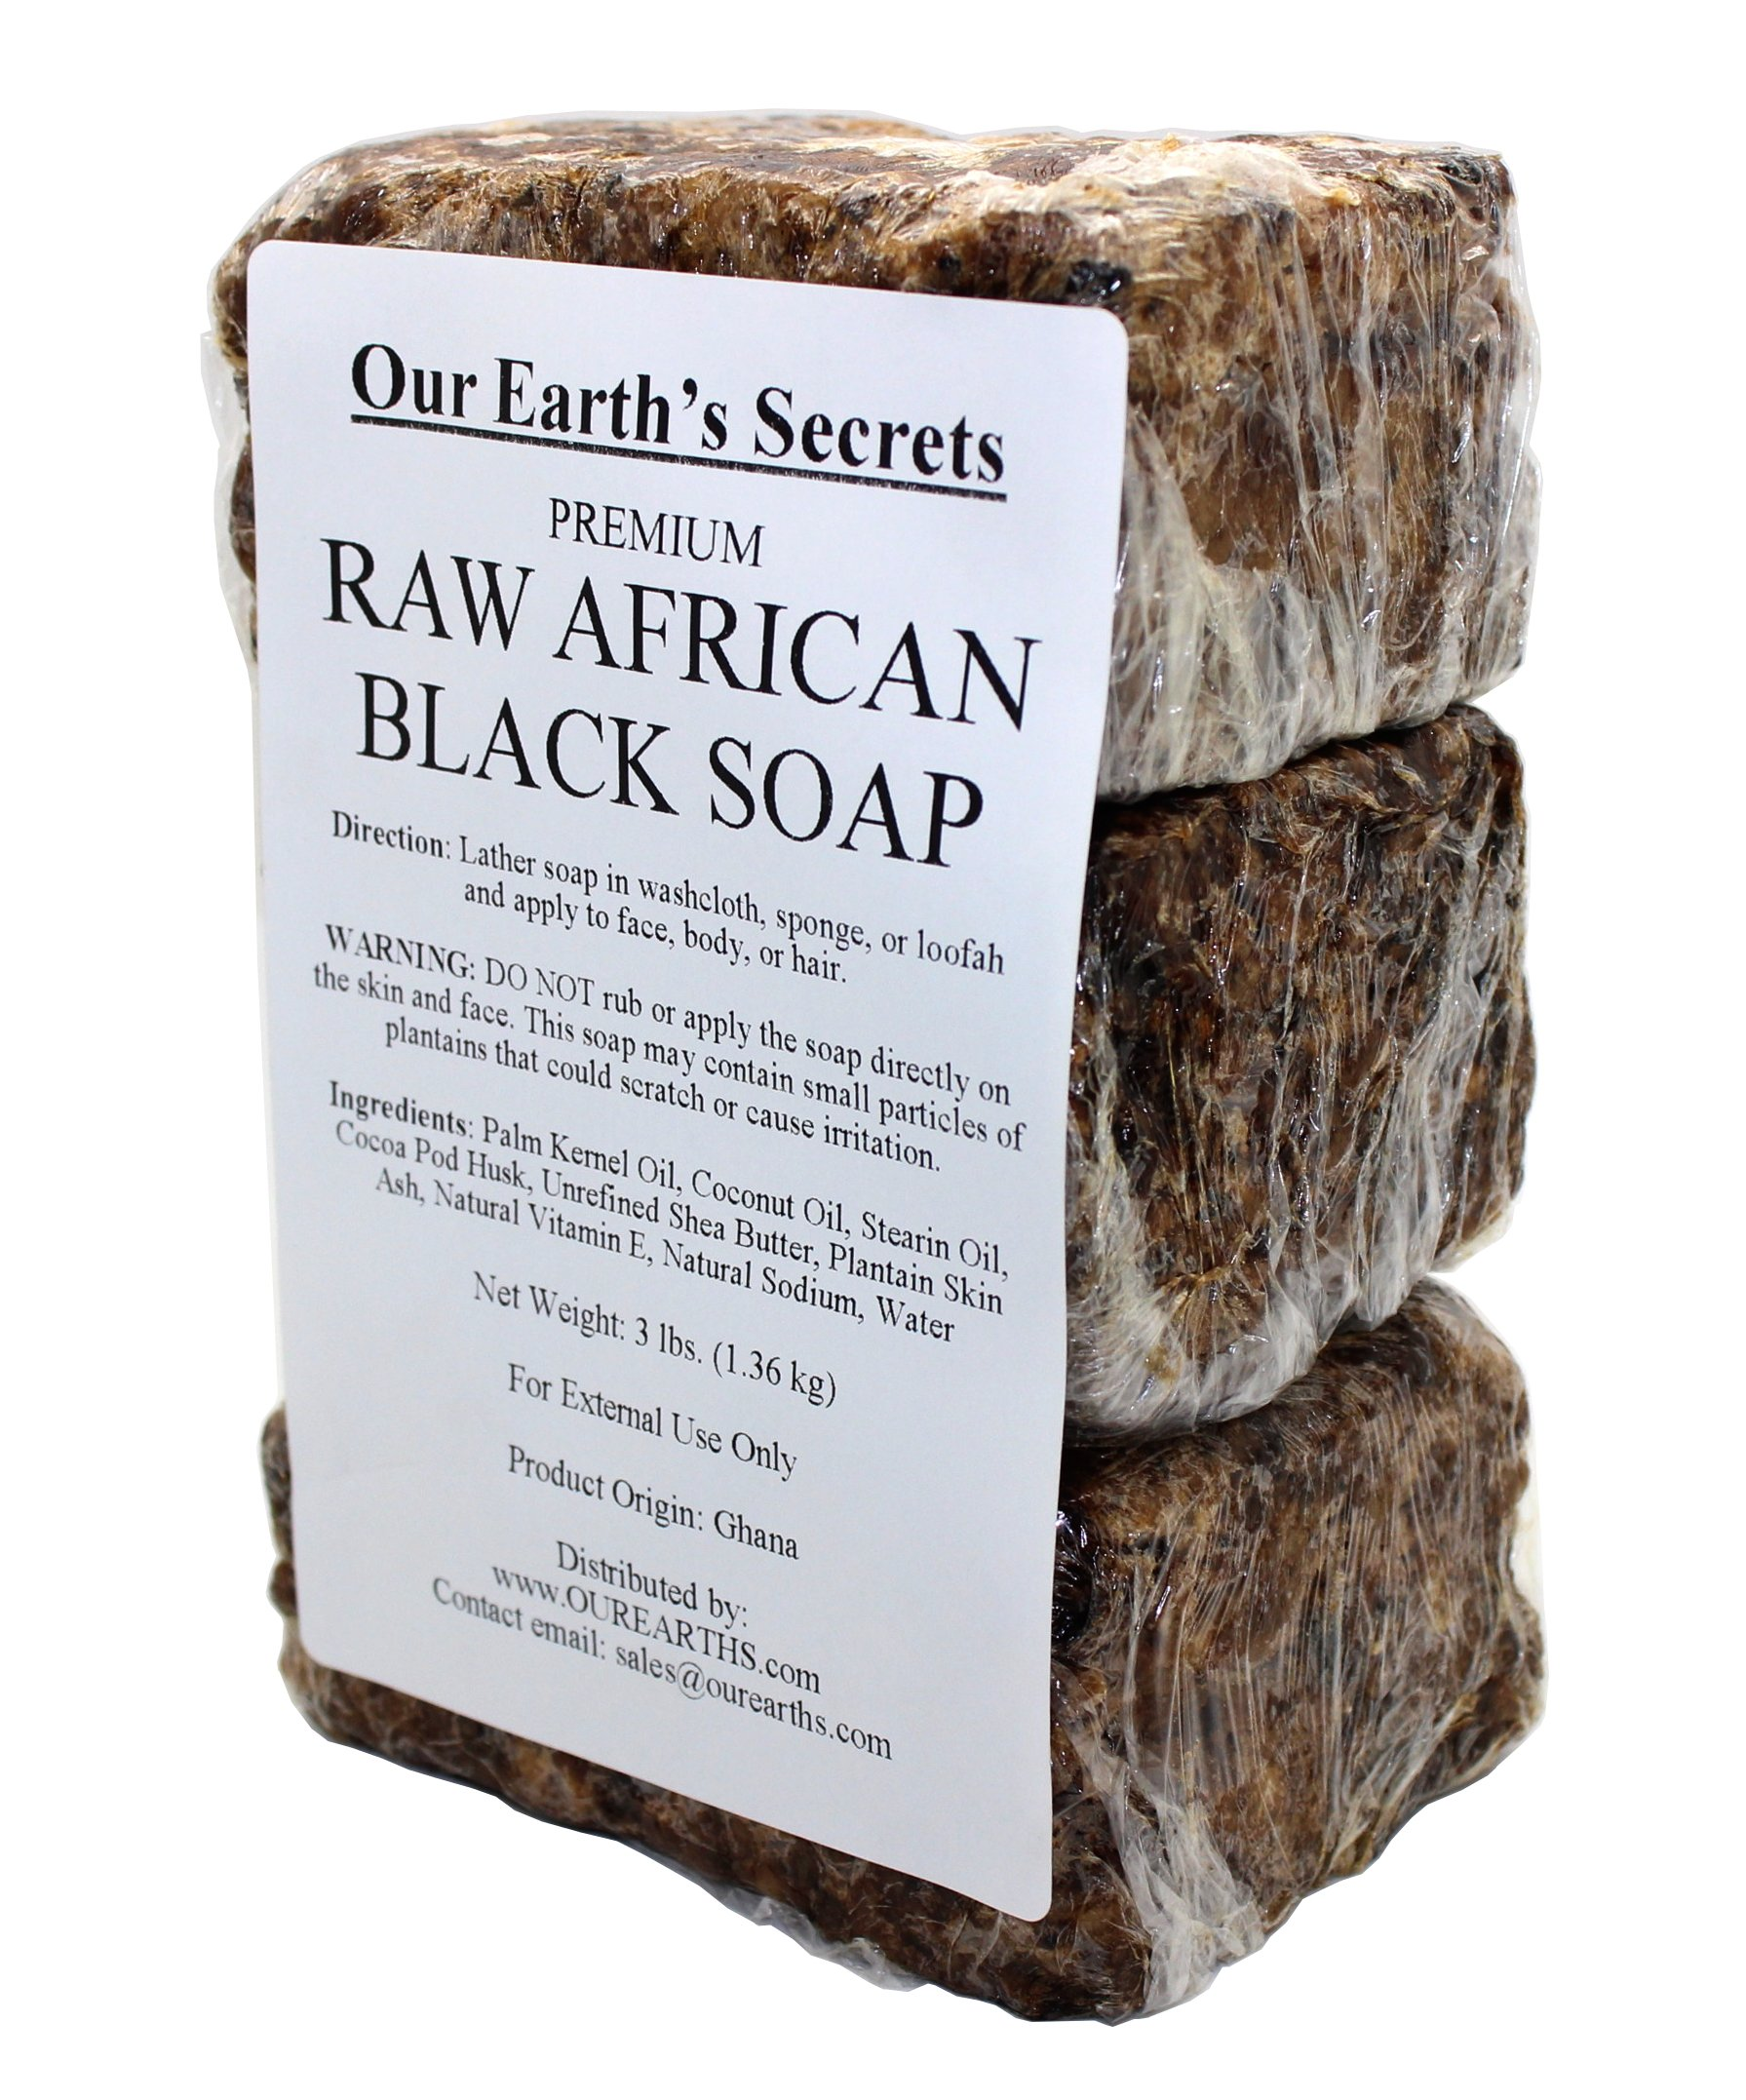 Our Earth's Secrets Premium Natural Raw African Black Soap, 3 Pound by Our Earth's Secrets